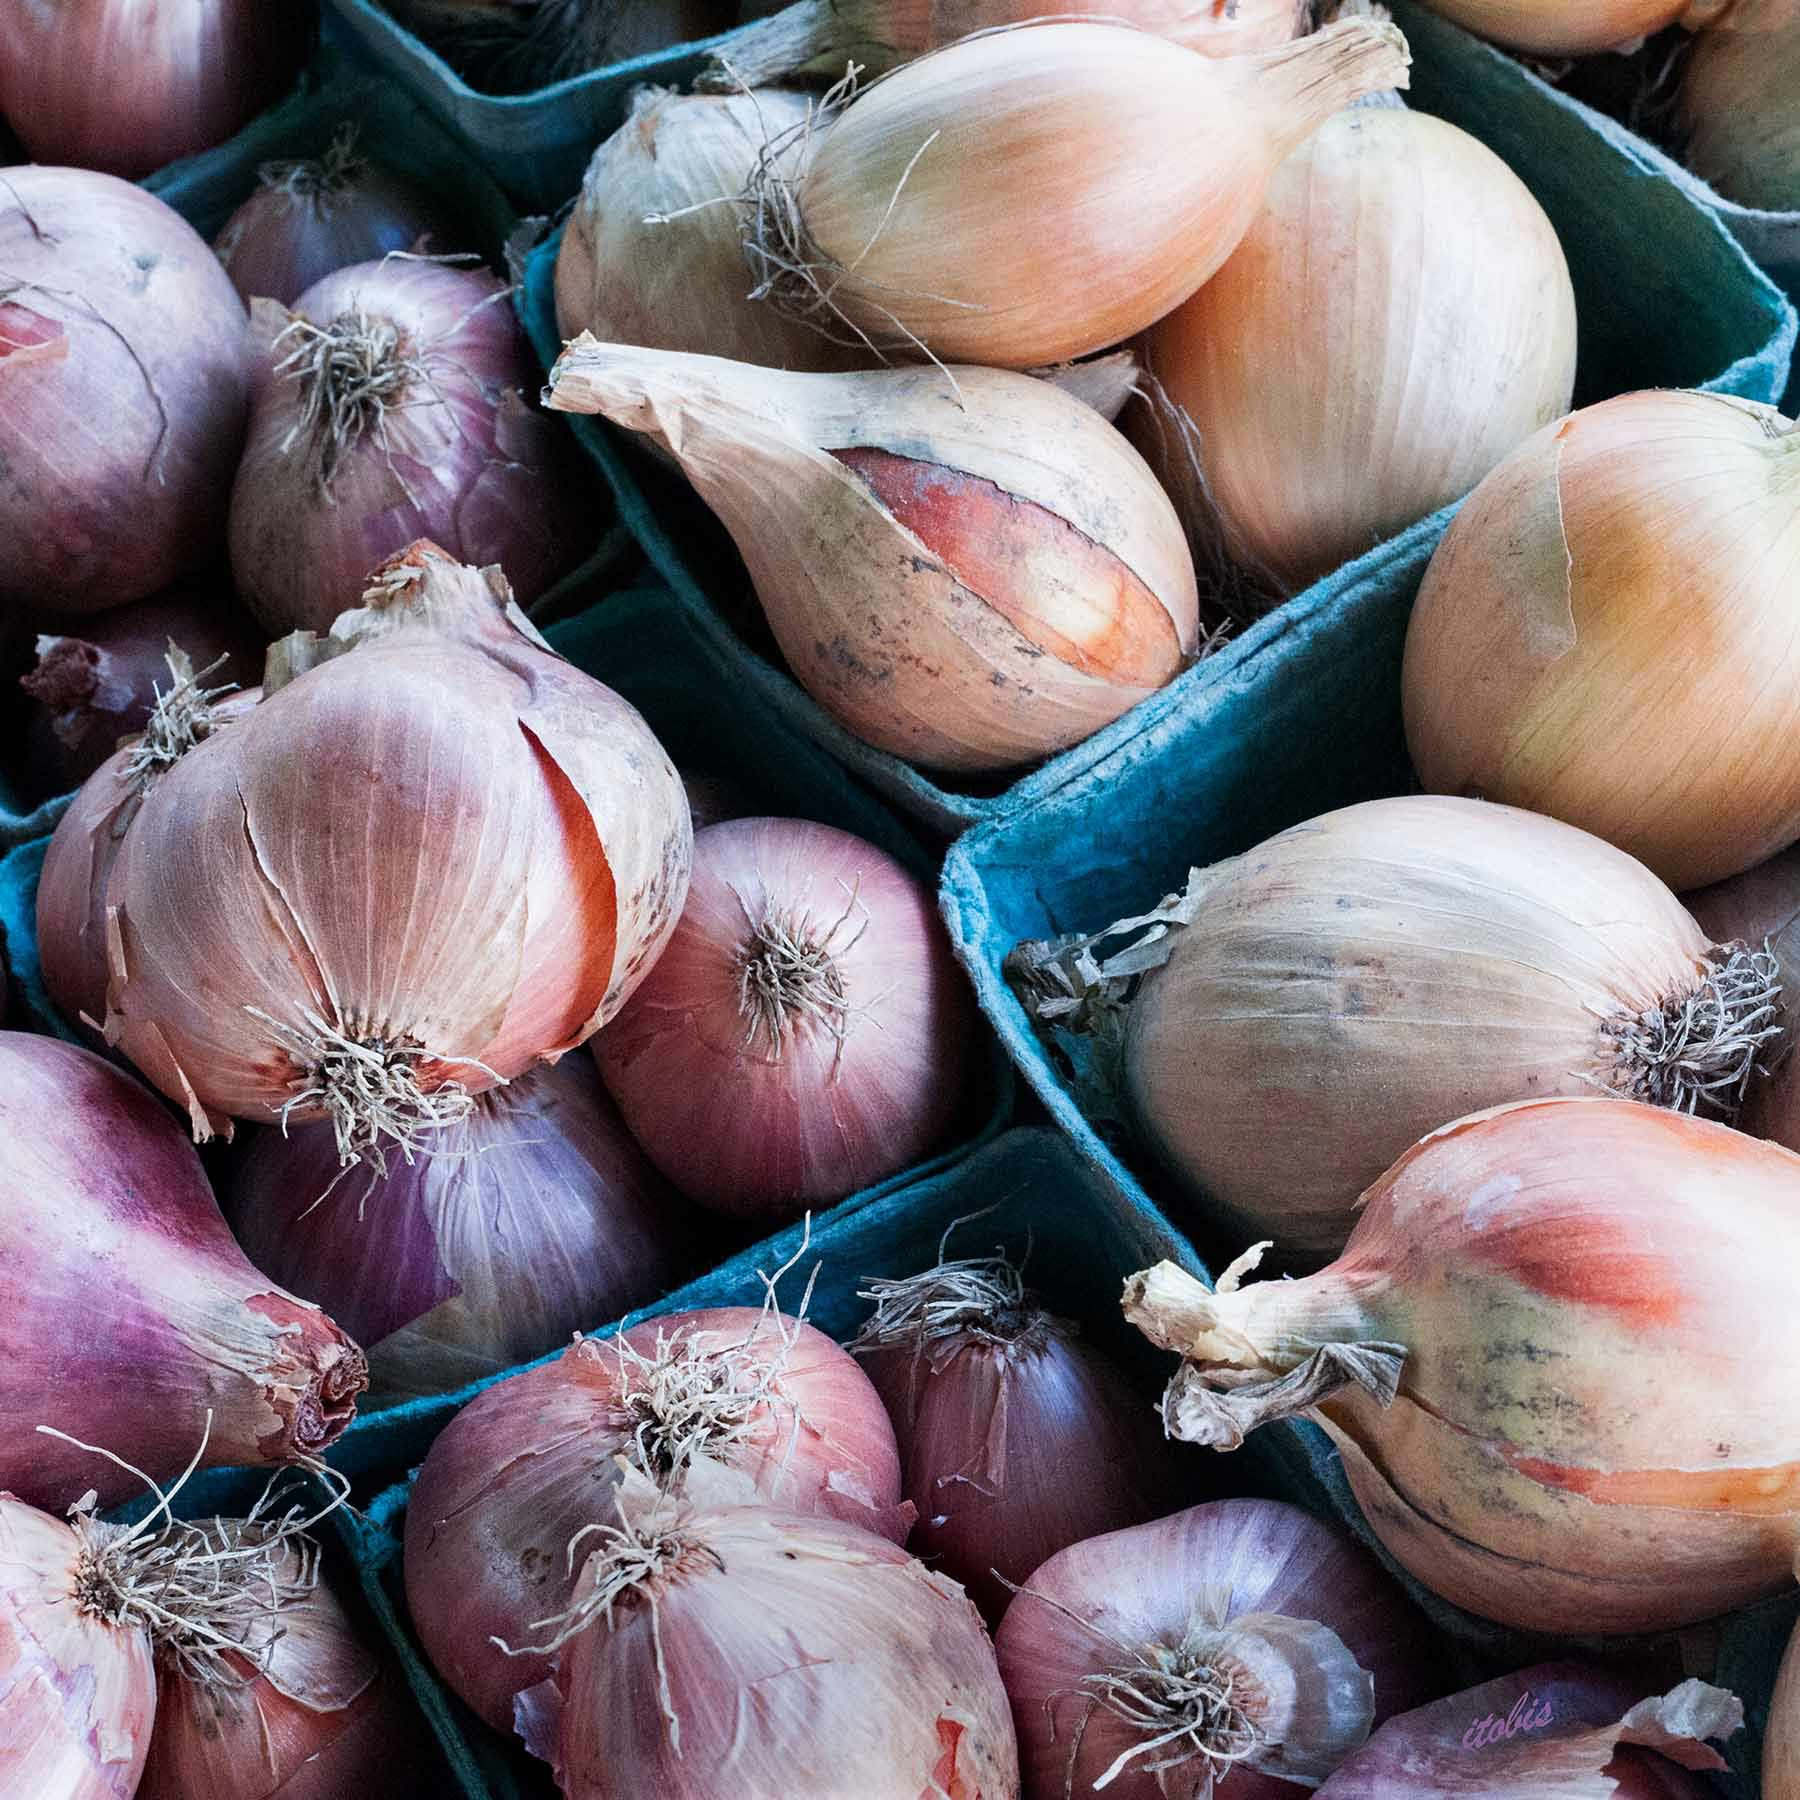 Shallots at the Market - Waratah Downs Organic Farm - Ottawa Farmers' Market, Lansdowne Park - photo by Irene Tobis